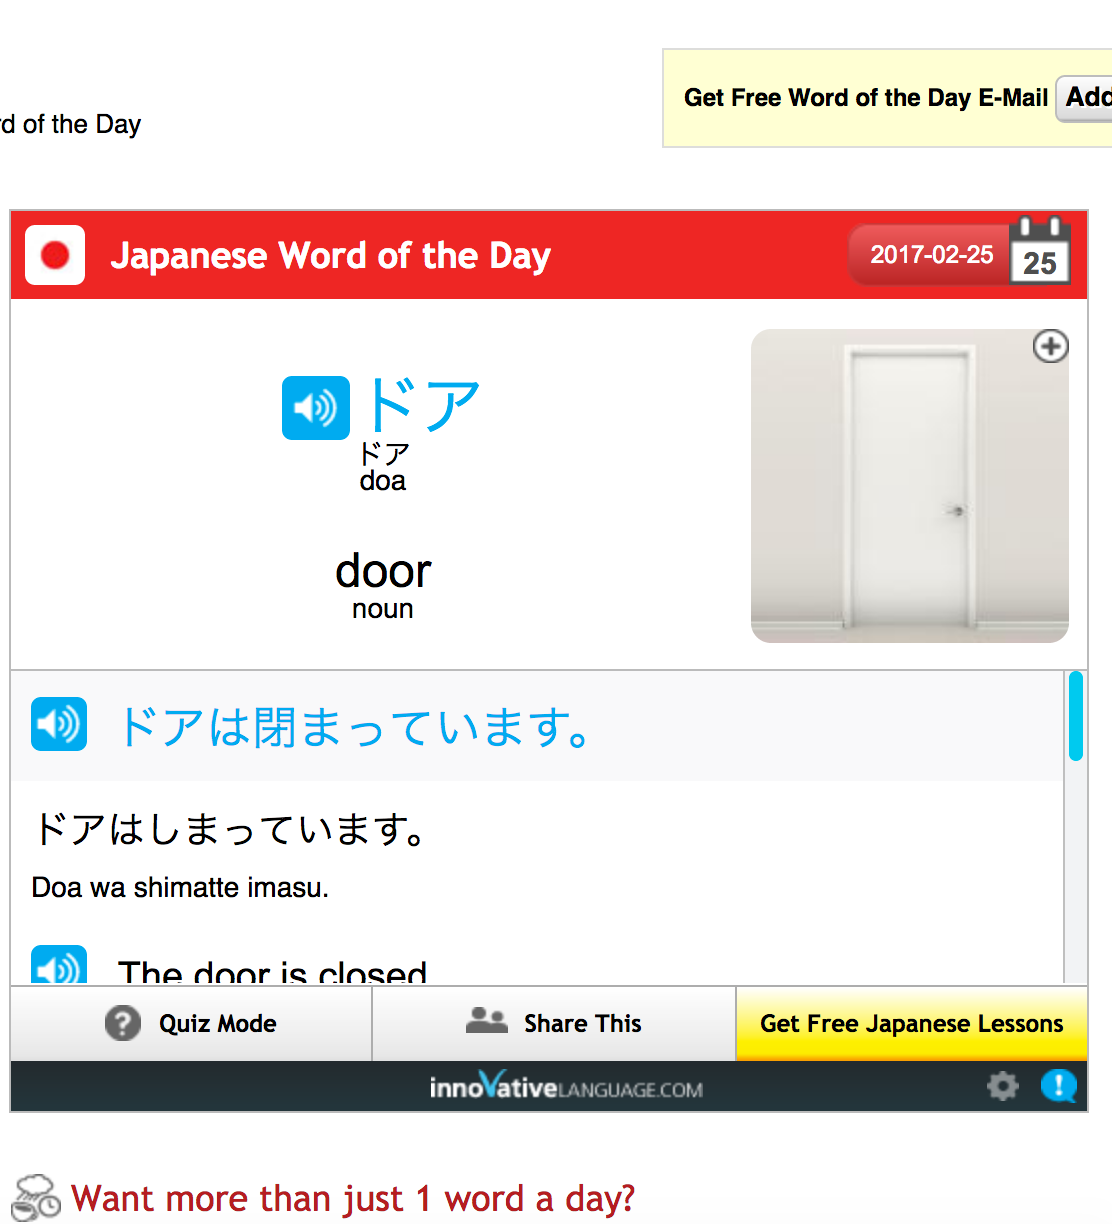 japanese word of the day email